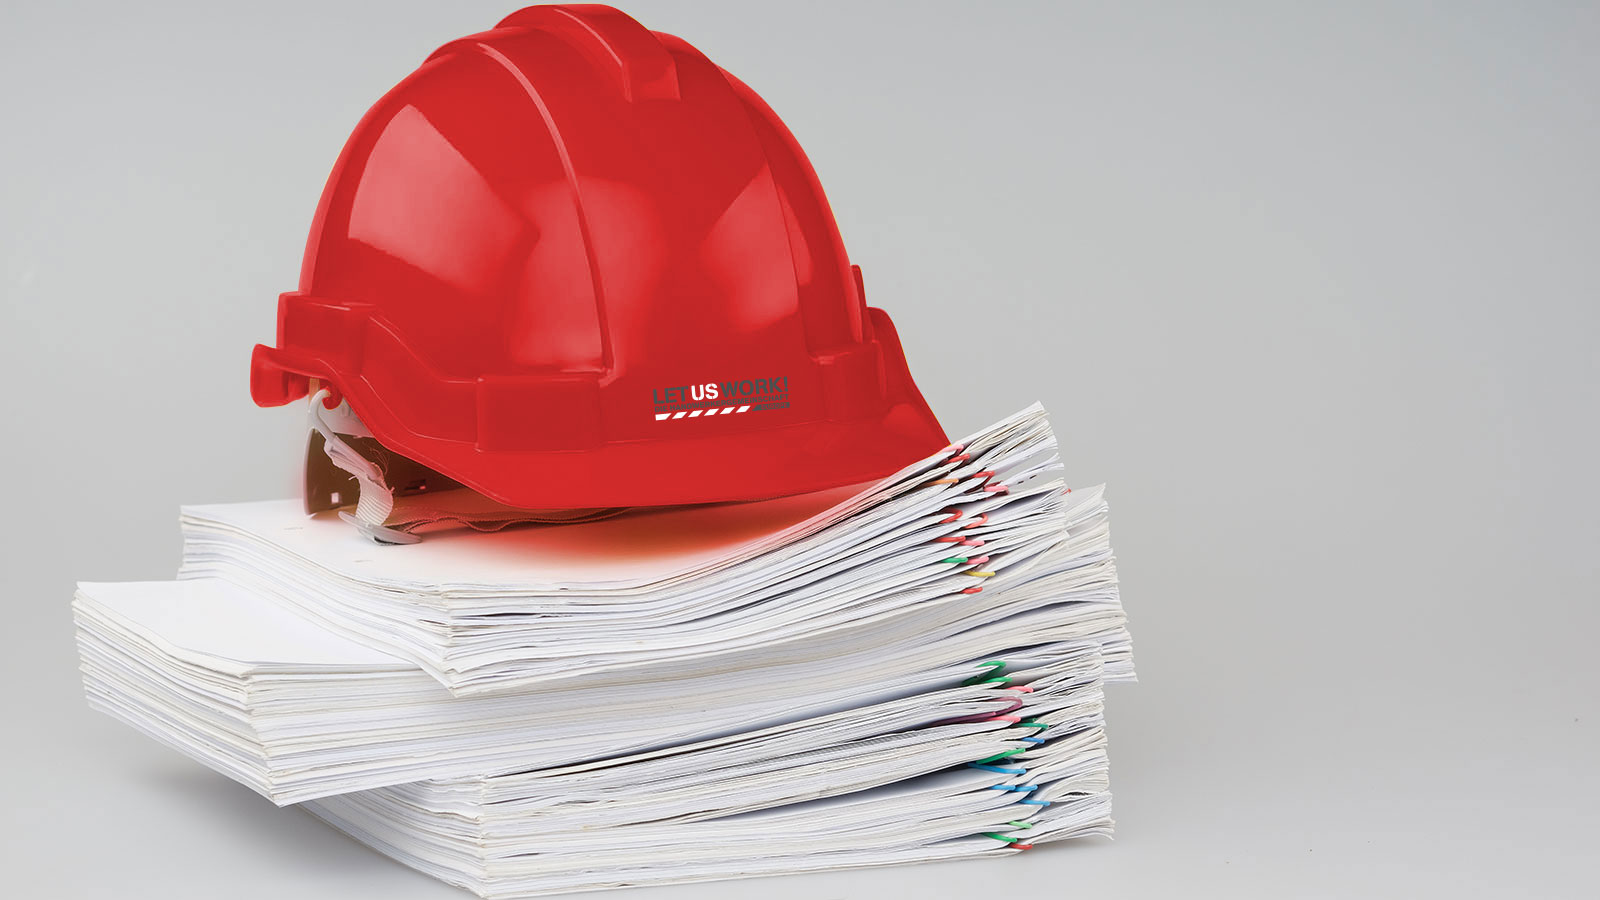 Regulations with red helmet